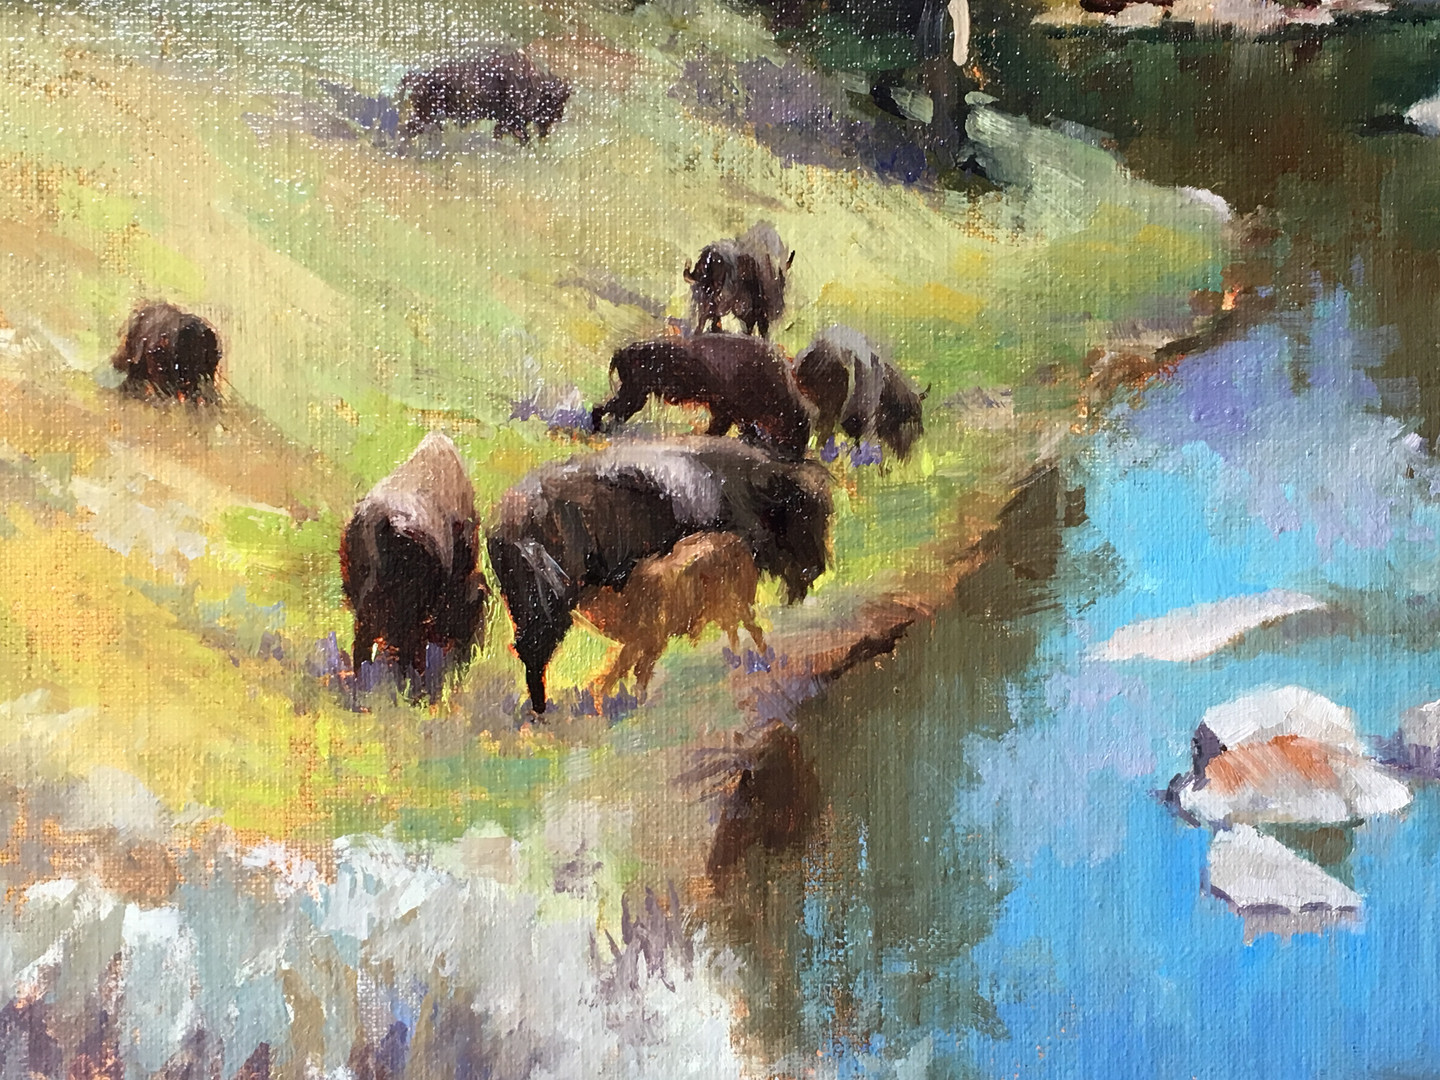 Detail of Lamar Valley, Yellowstone